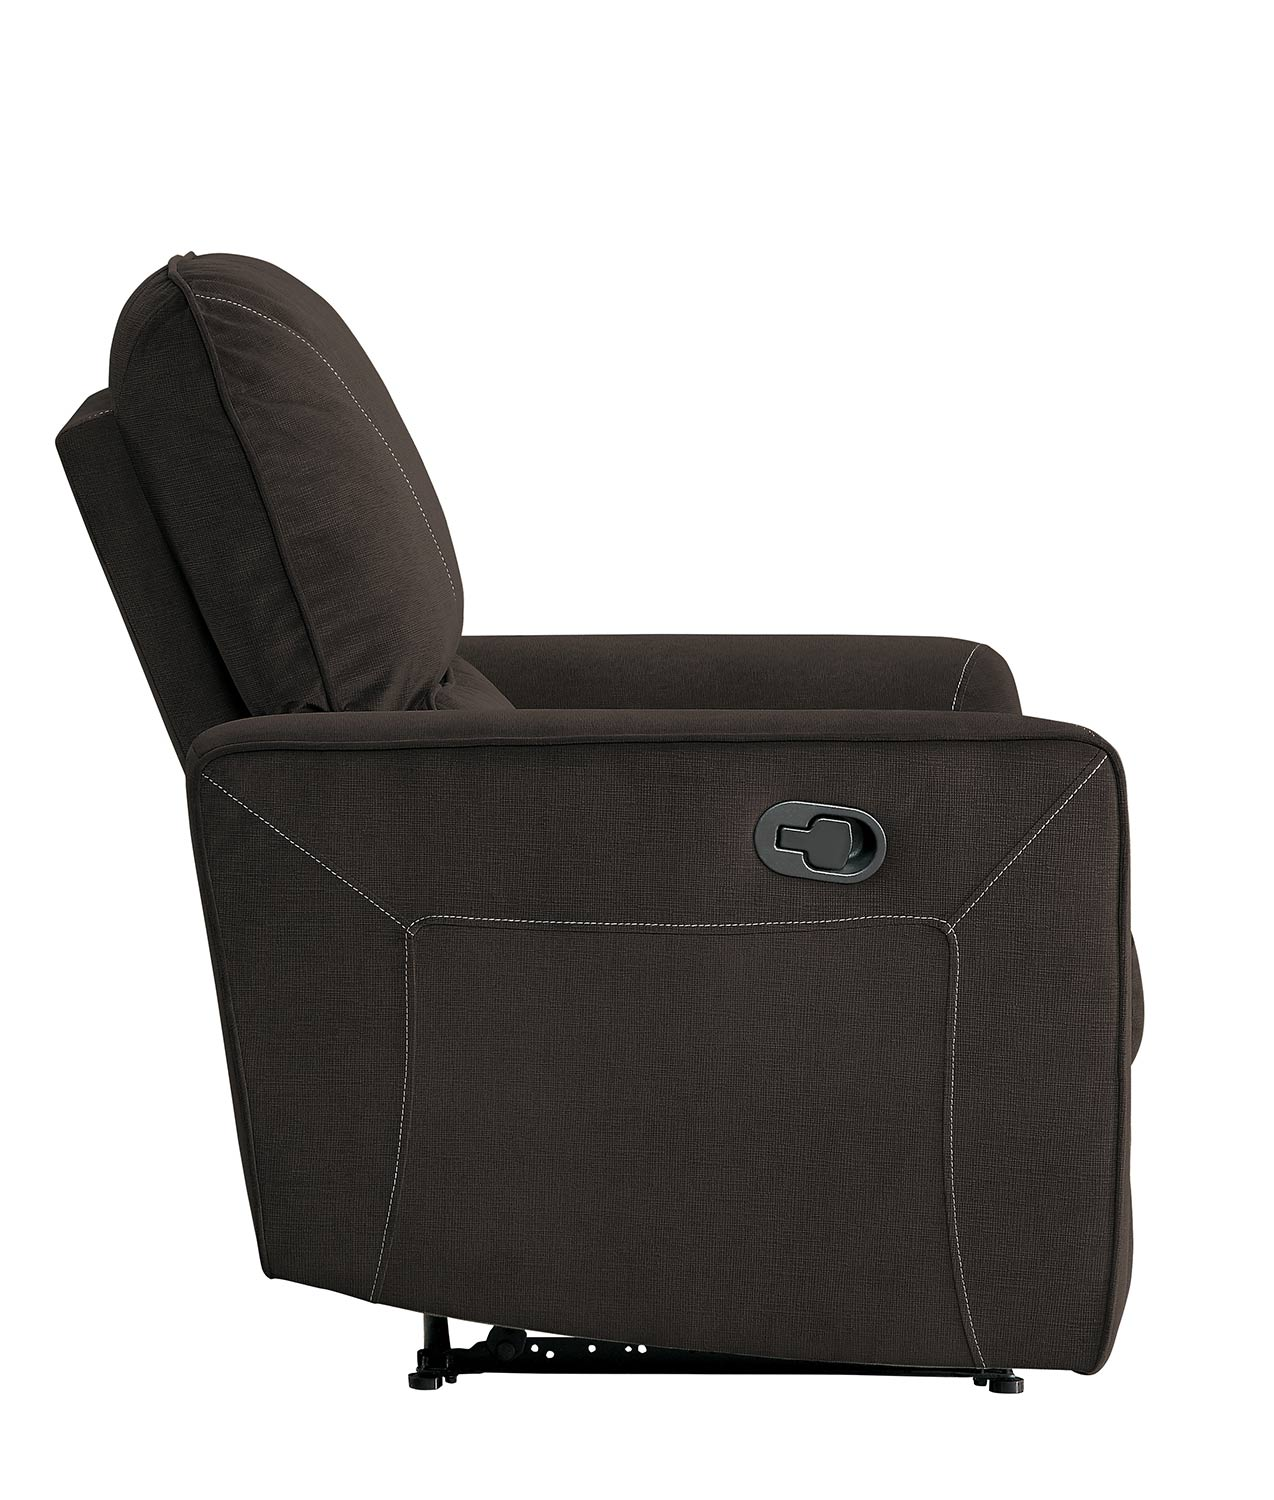 Homelegance Dowling Reclining Chair - Chocolate